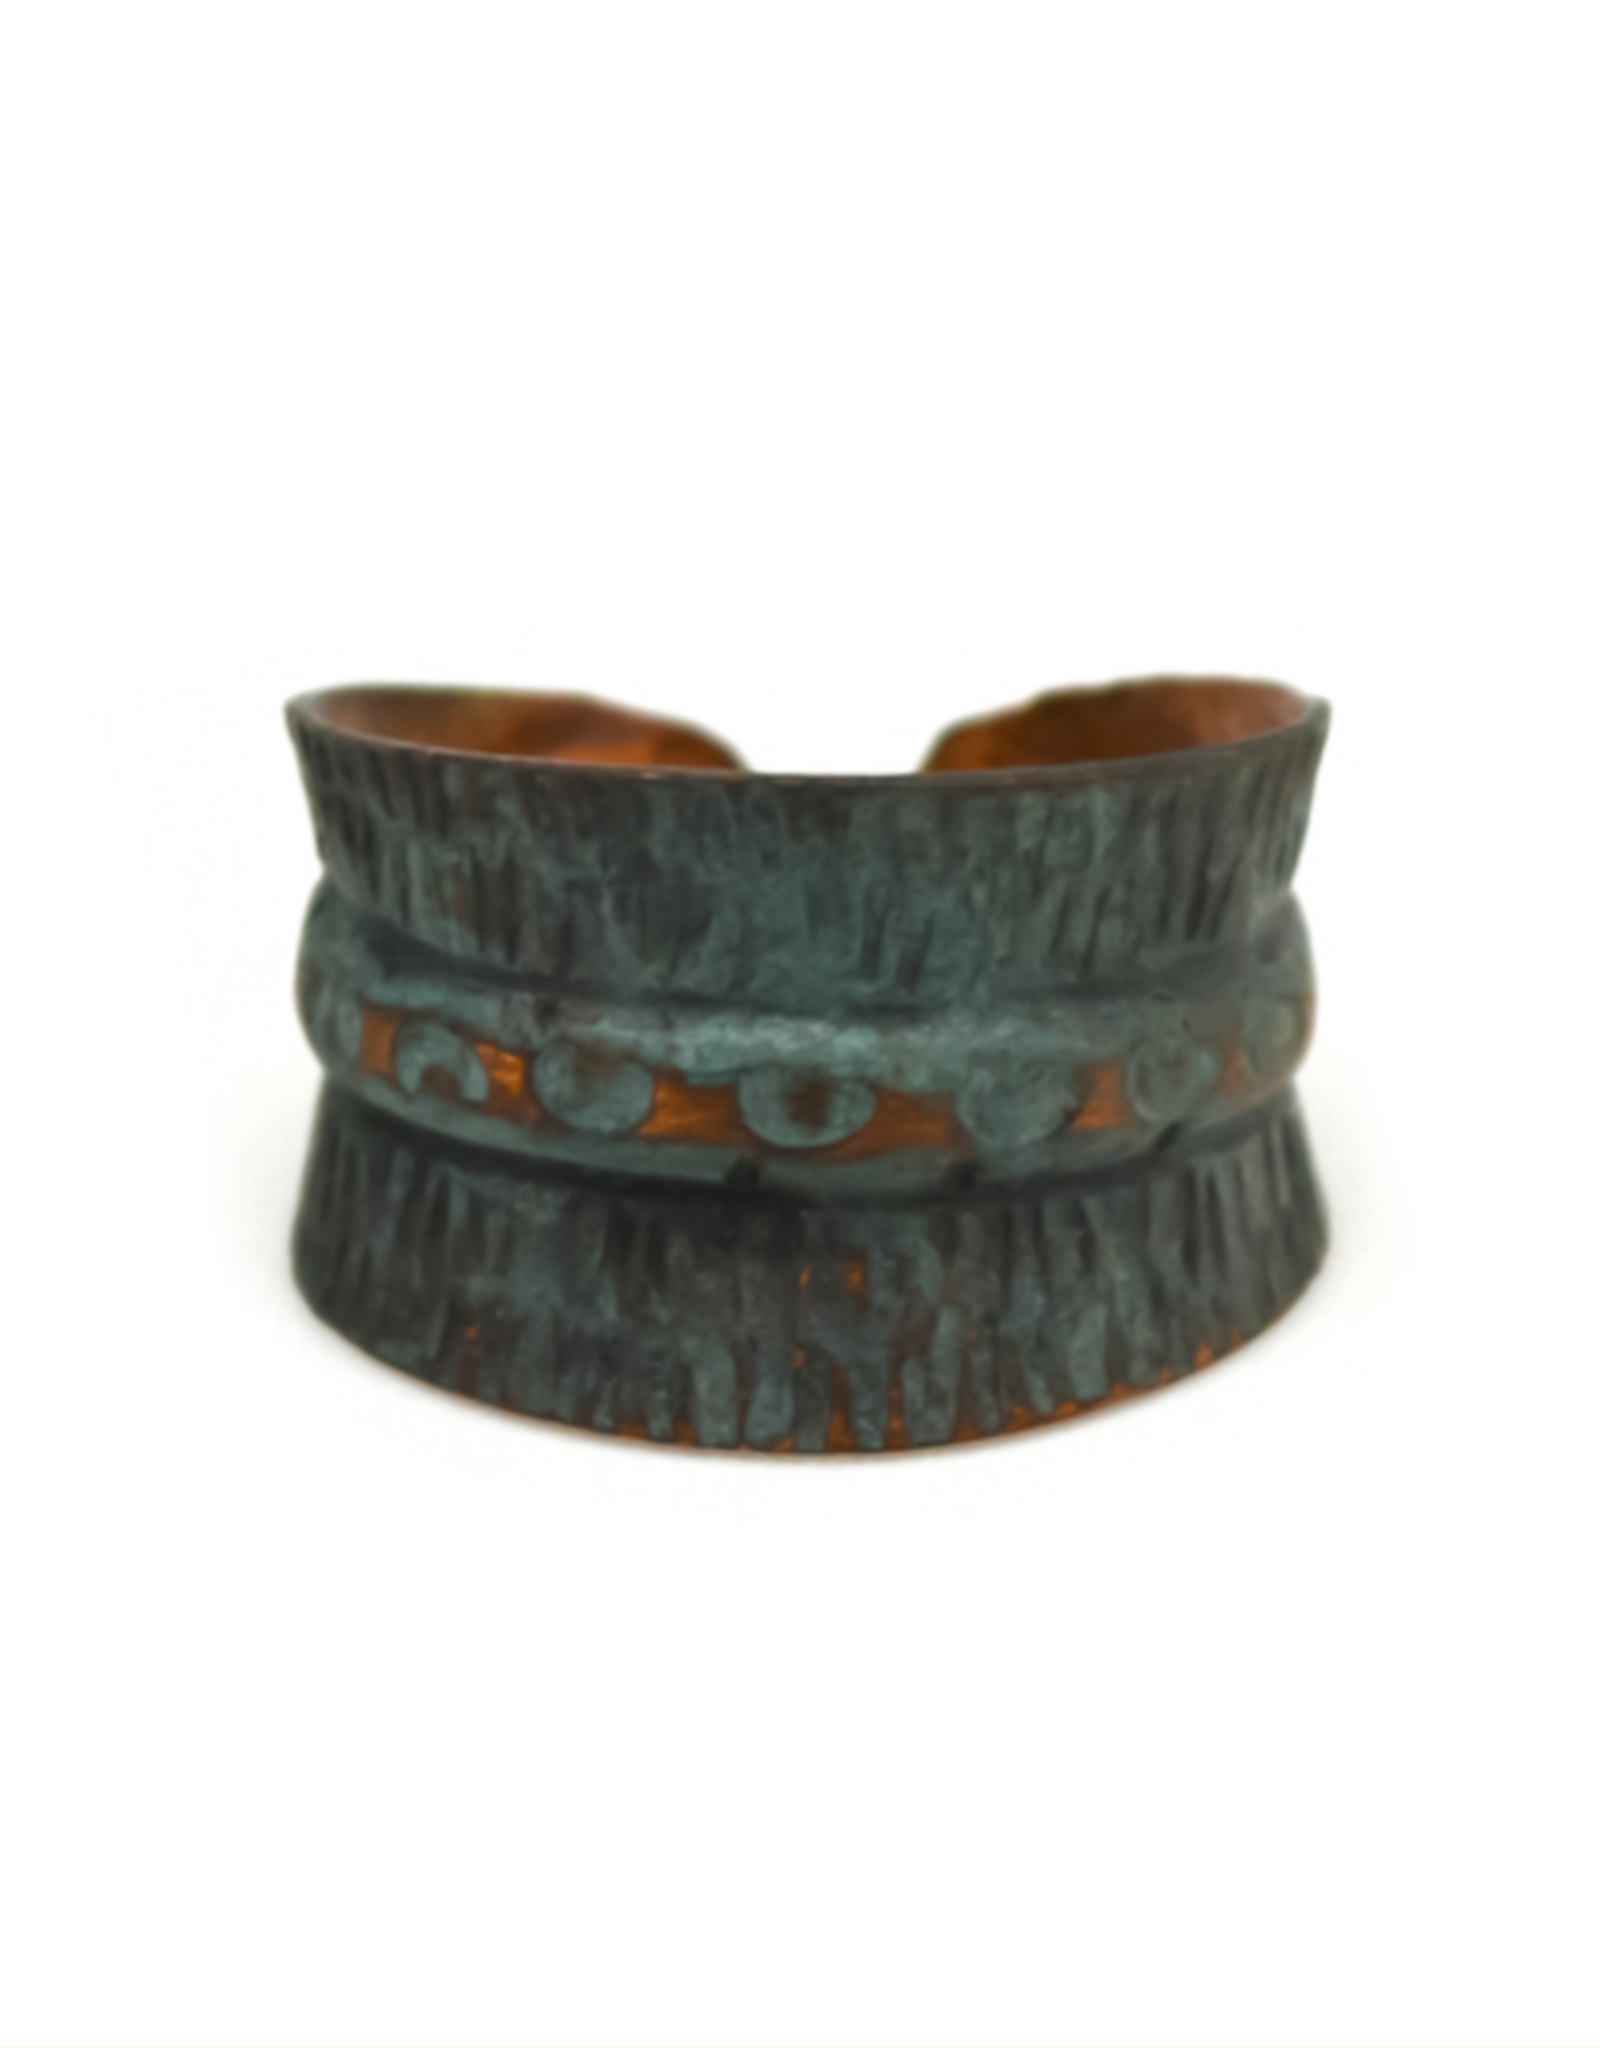 Copper Patina Ring 286